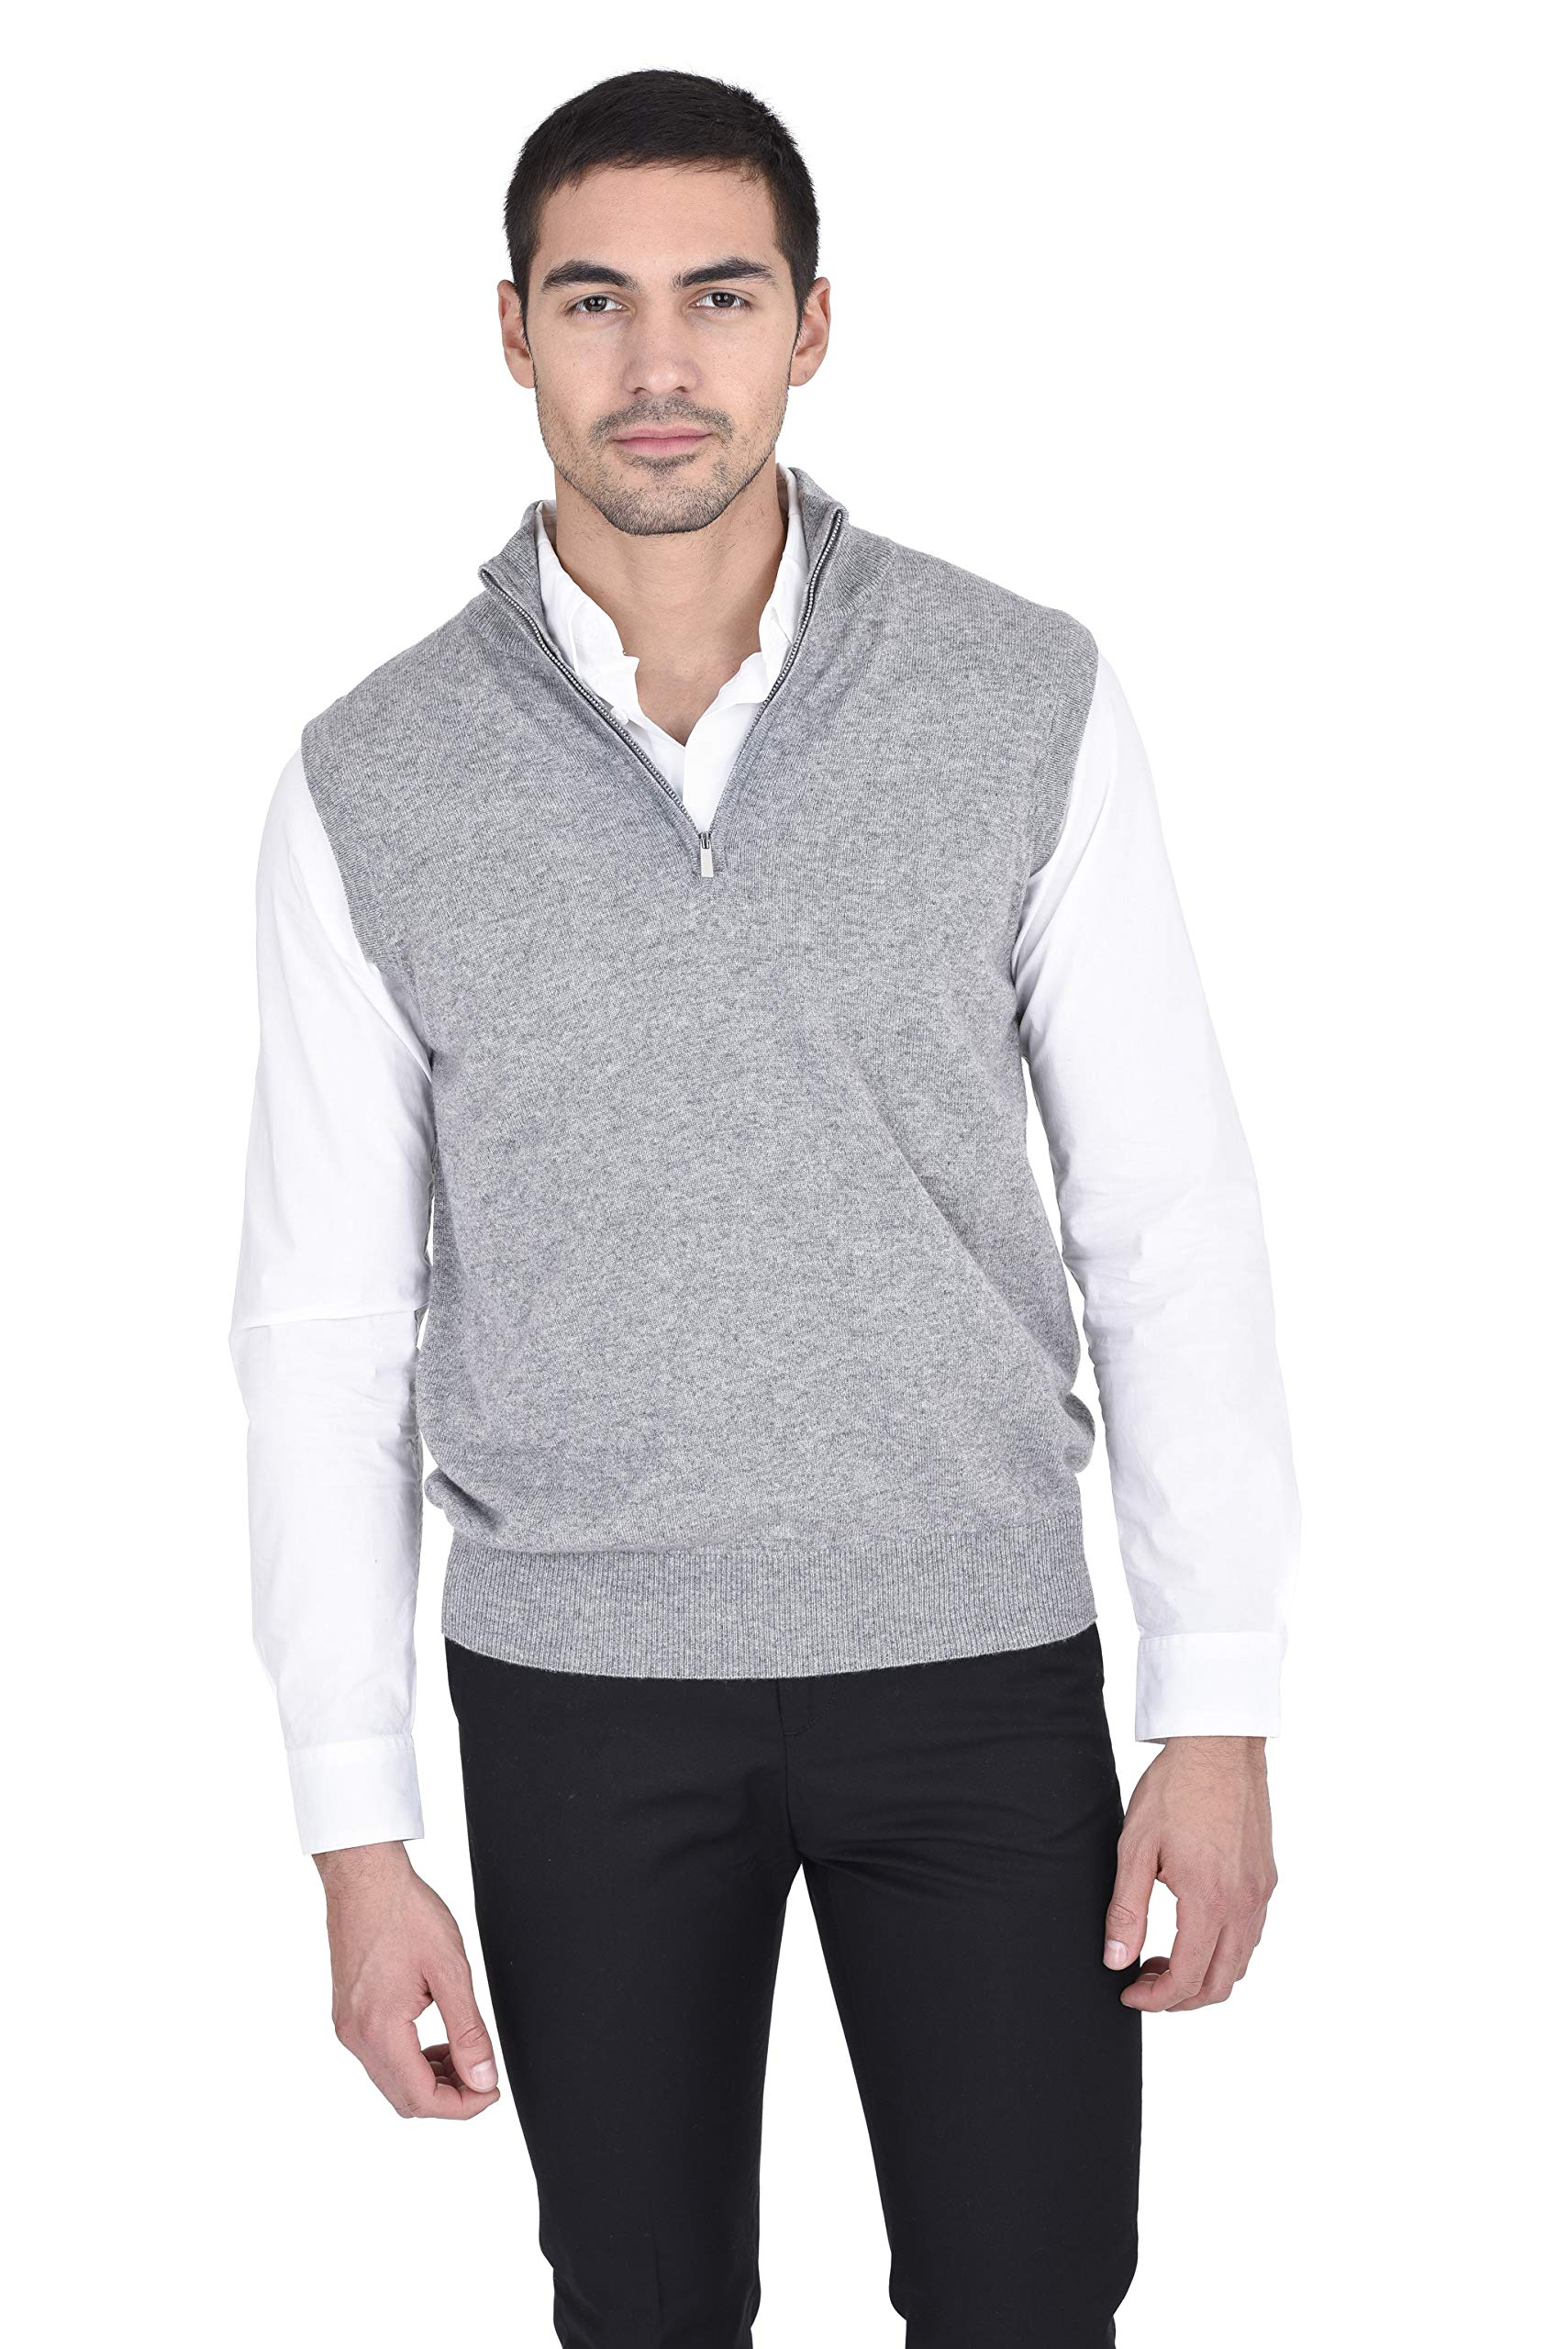 State Fusio Men's Quarter Zip Up Mock Neck Sweater Vest Cashmere Merino Wool Lightweight Sleeveless Pullover (XX-Large, Heather Grey) by State Fusio